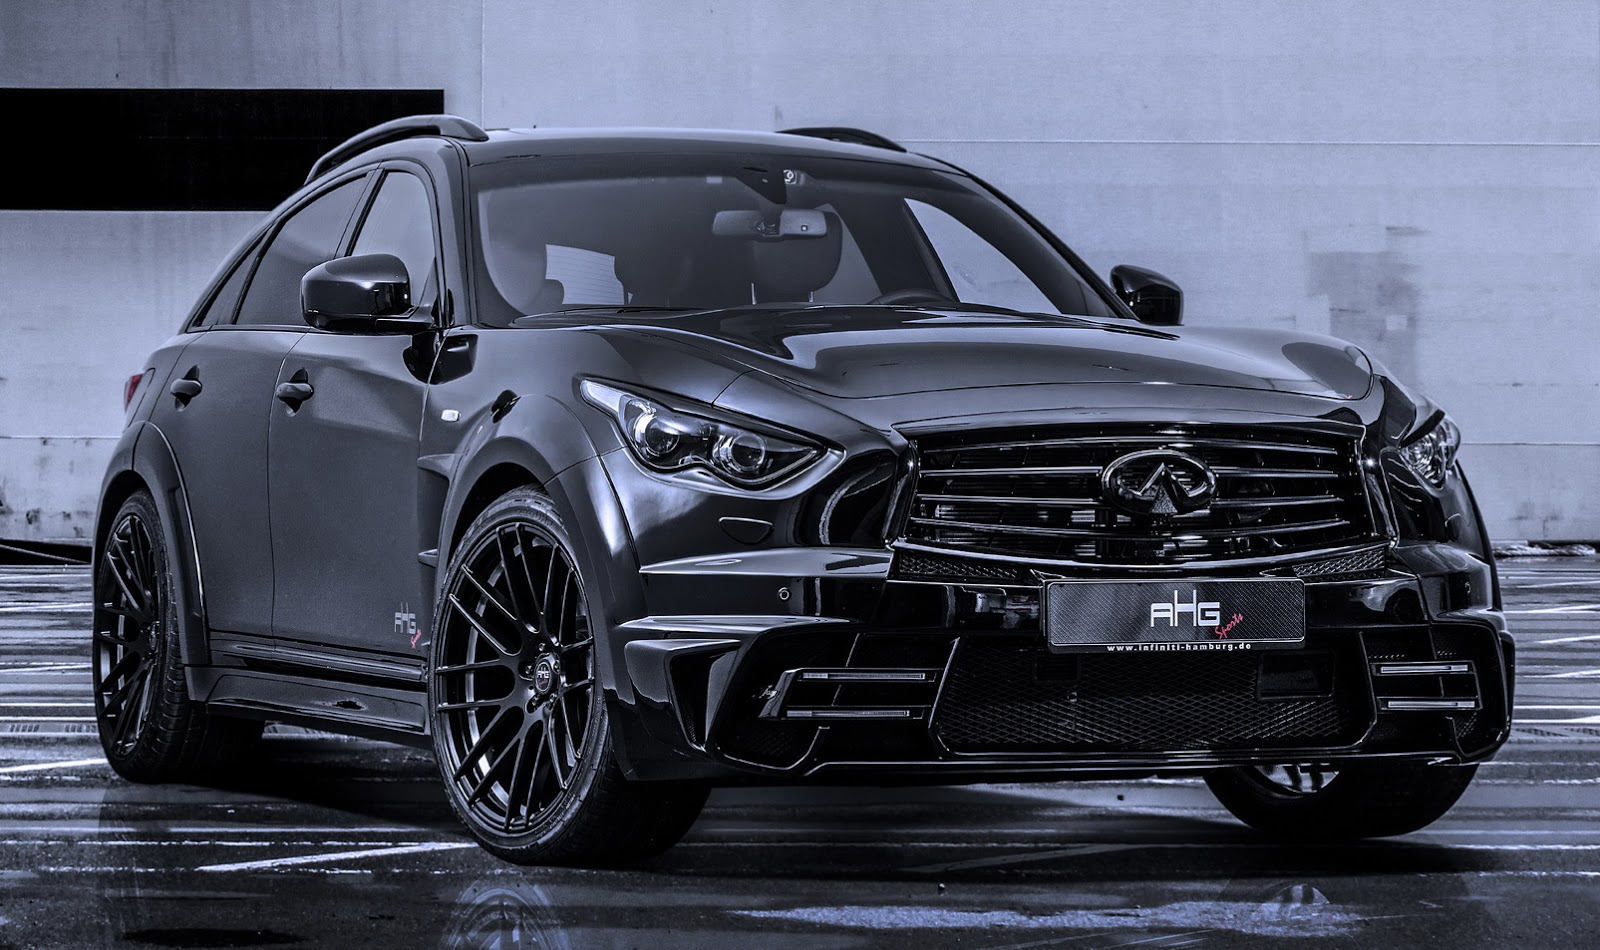 Black Qx70 >> AHG Sports tweaks Infiniti QX70 - ForceGT.com